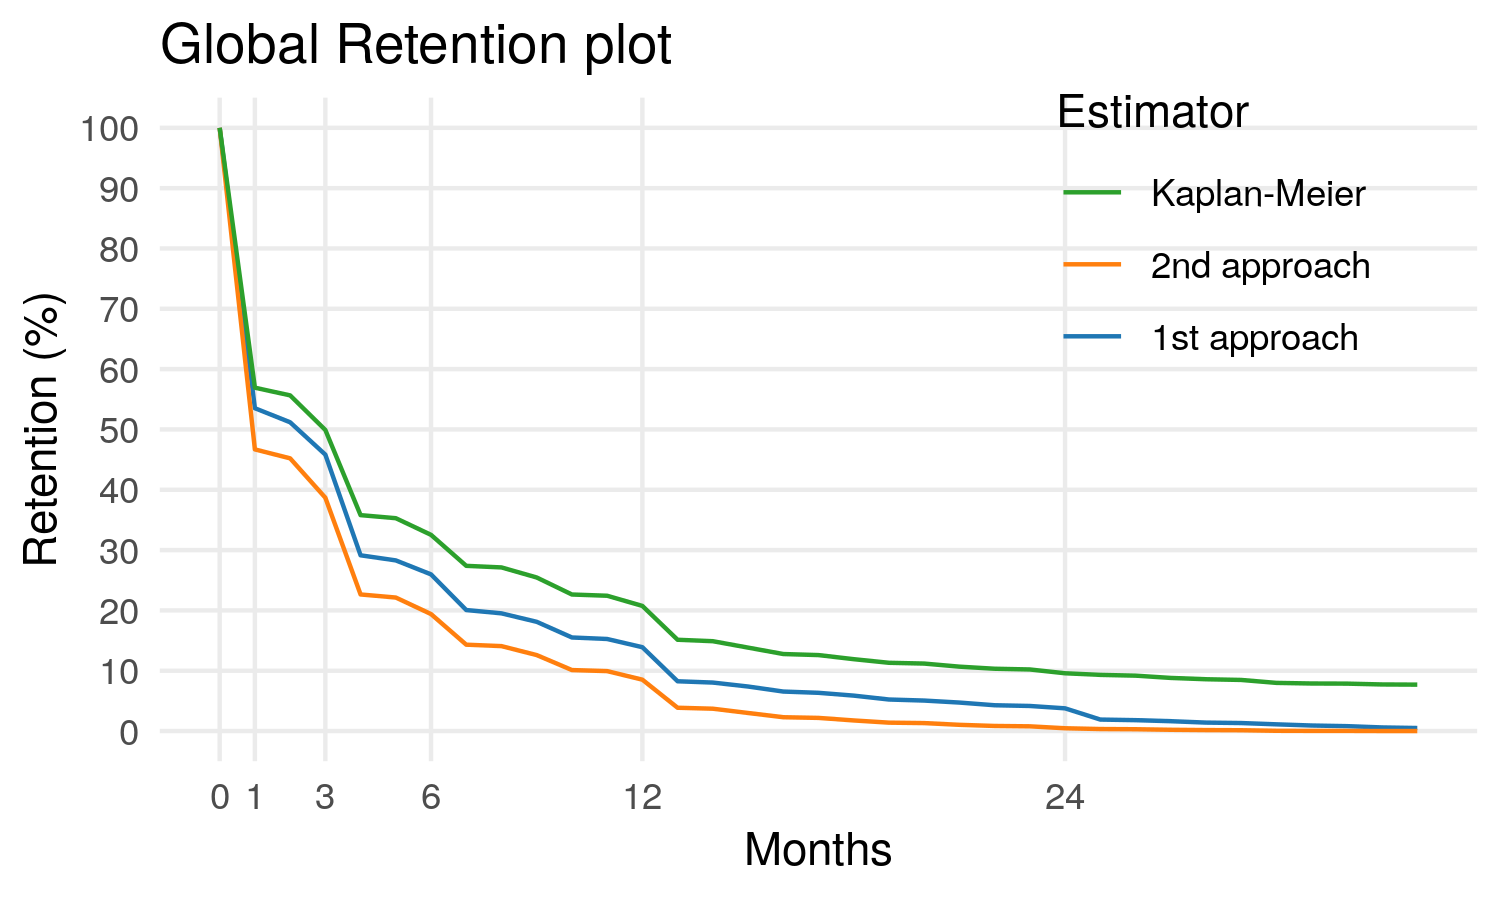 Global Retention